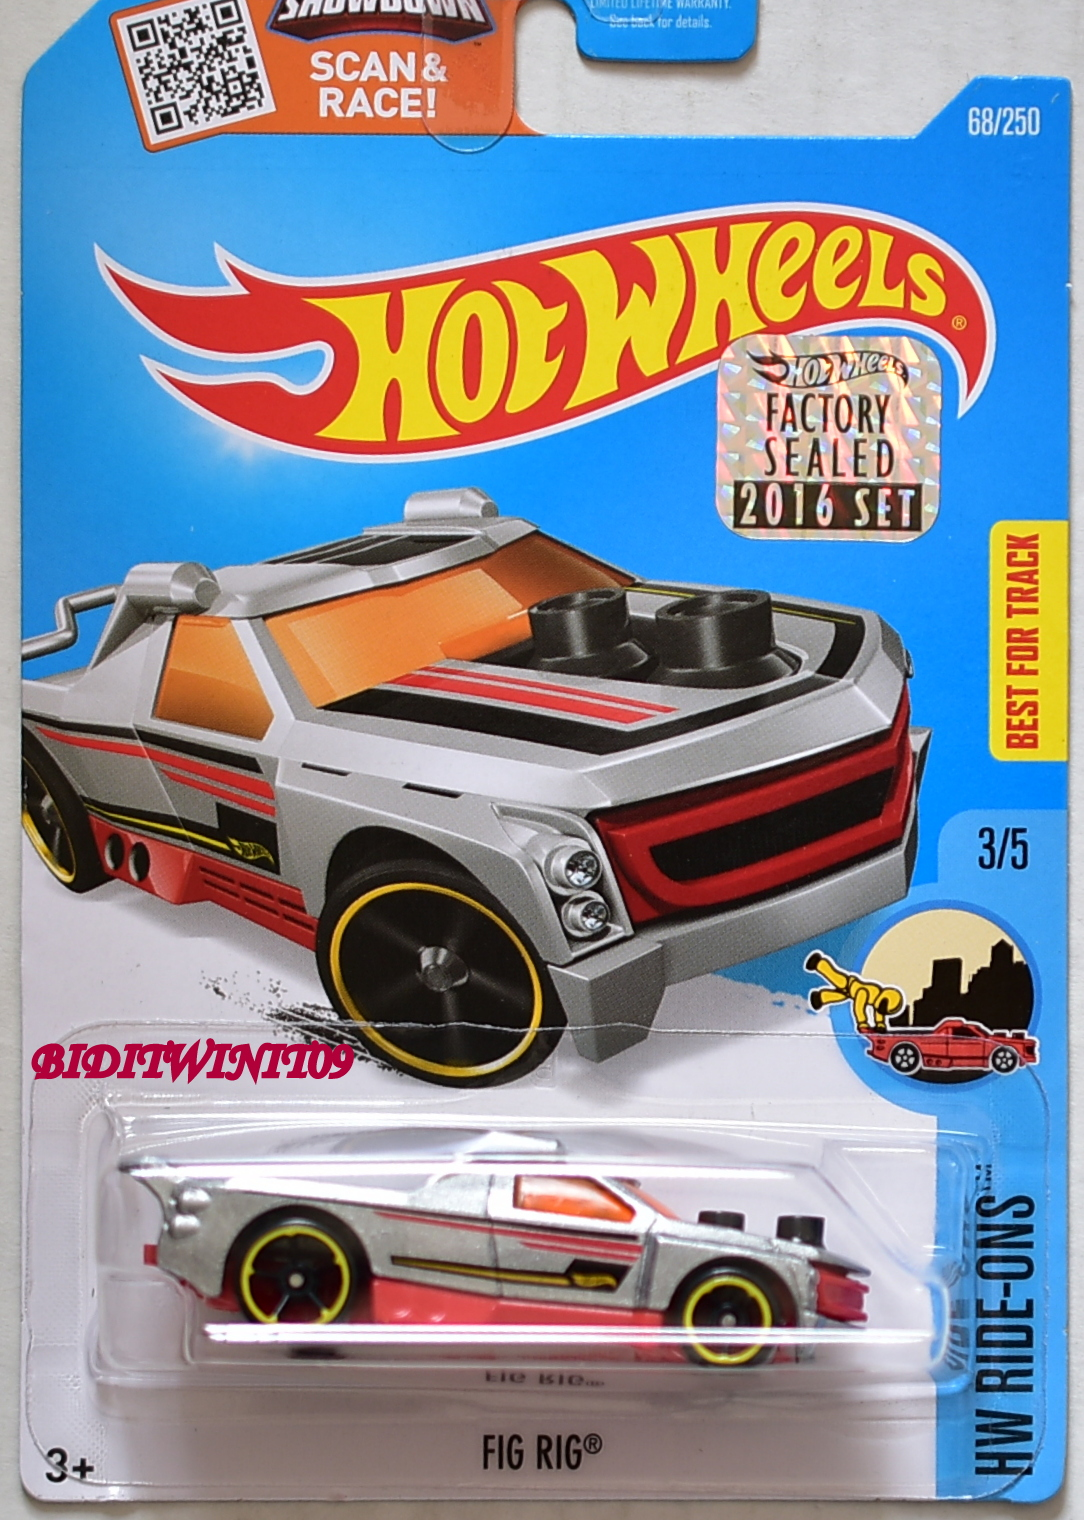 HOT WHEELS 2016 HW RIDE-ONS FIG RIG #3/5 SILVER FACTORY SEALED E+